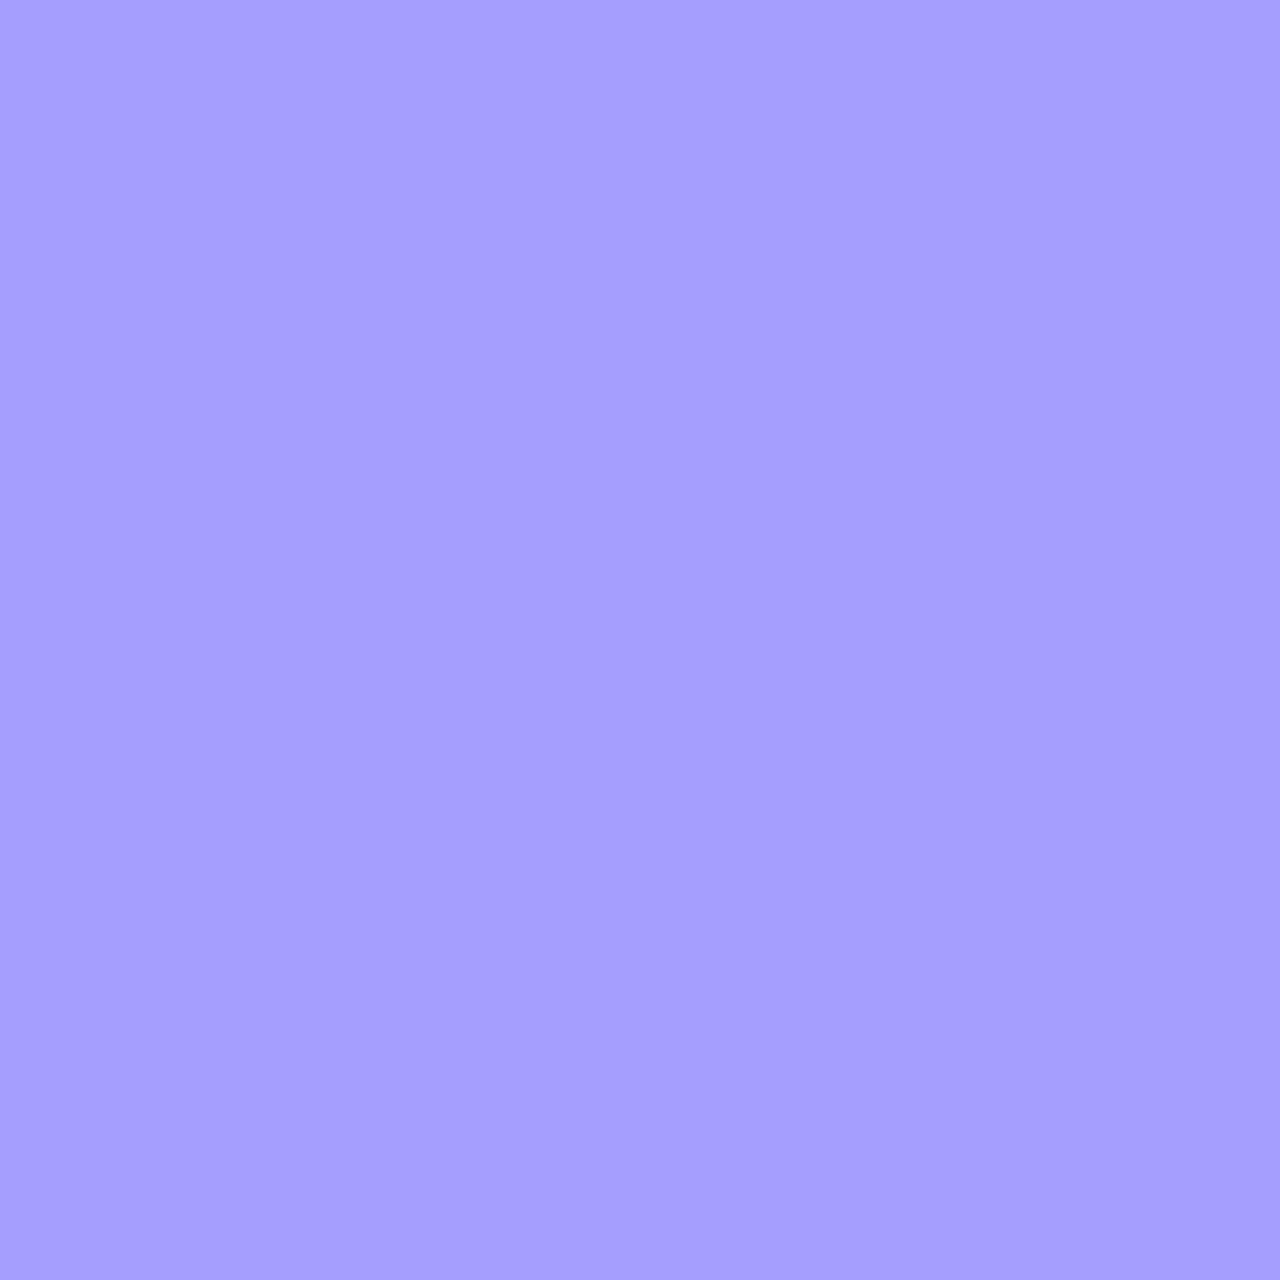 #4230 Rosco Gels Roscolux CalColor 30 Blue, 20x24""